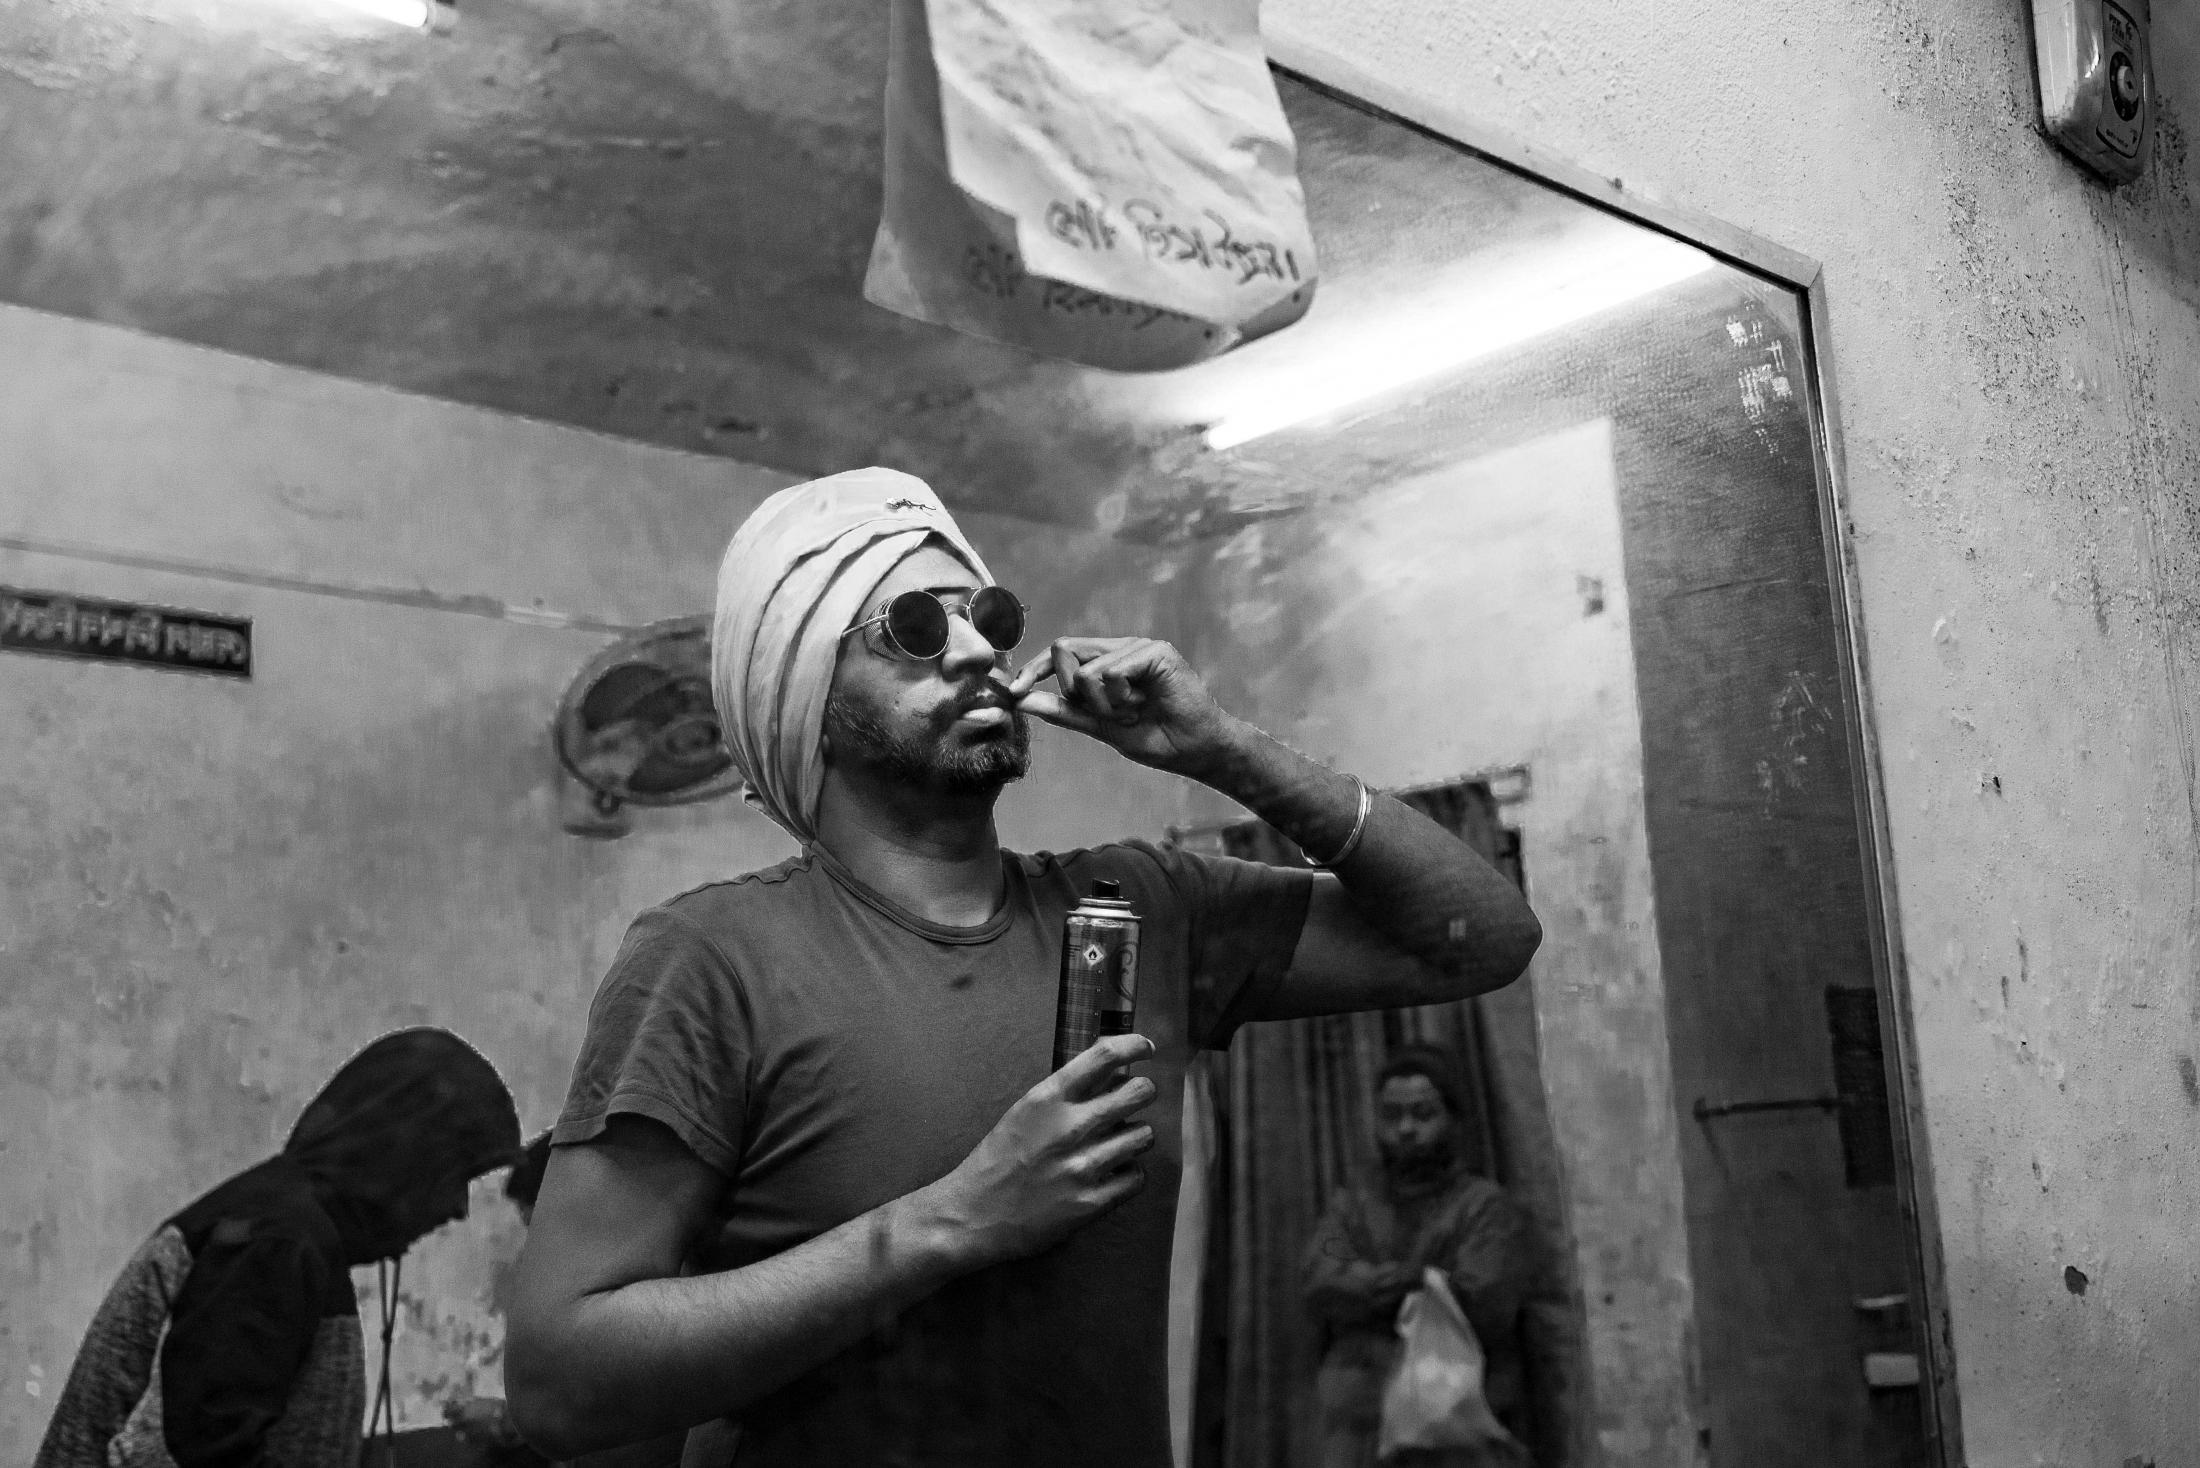 A performer checking his false mustache in front of the mirror.